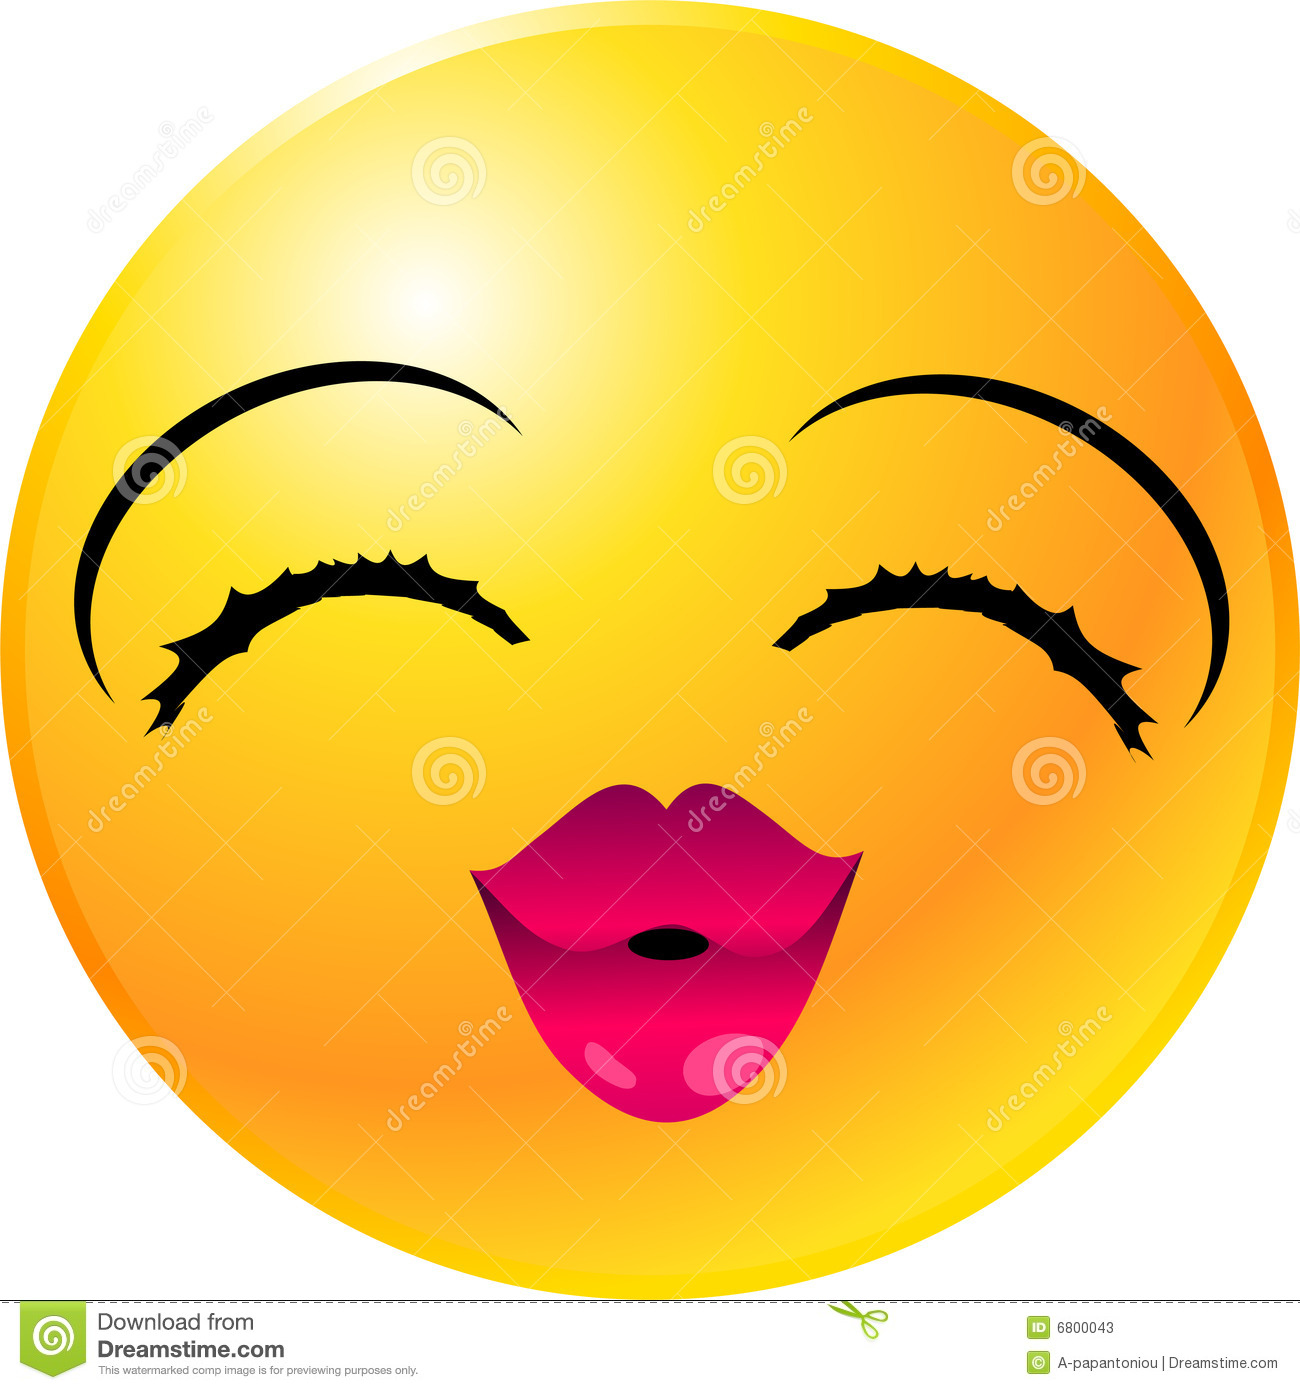 One Line Art Smiley : Emoticon smiley face stock vector illustration of